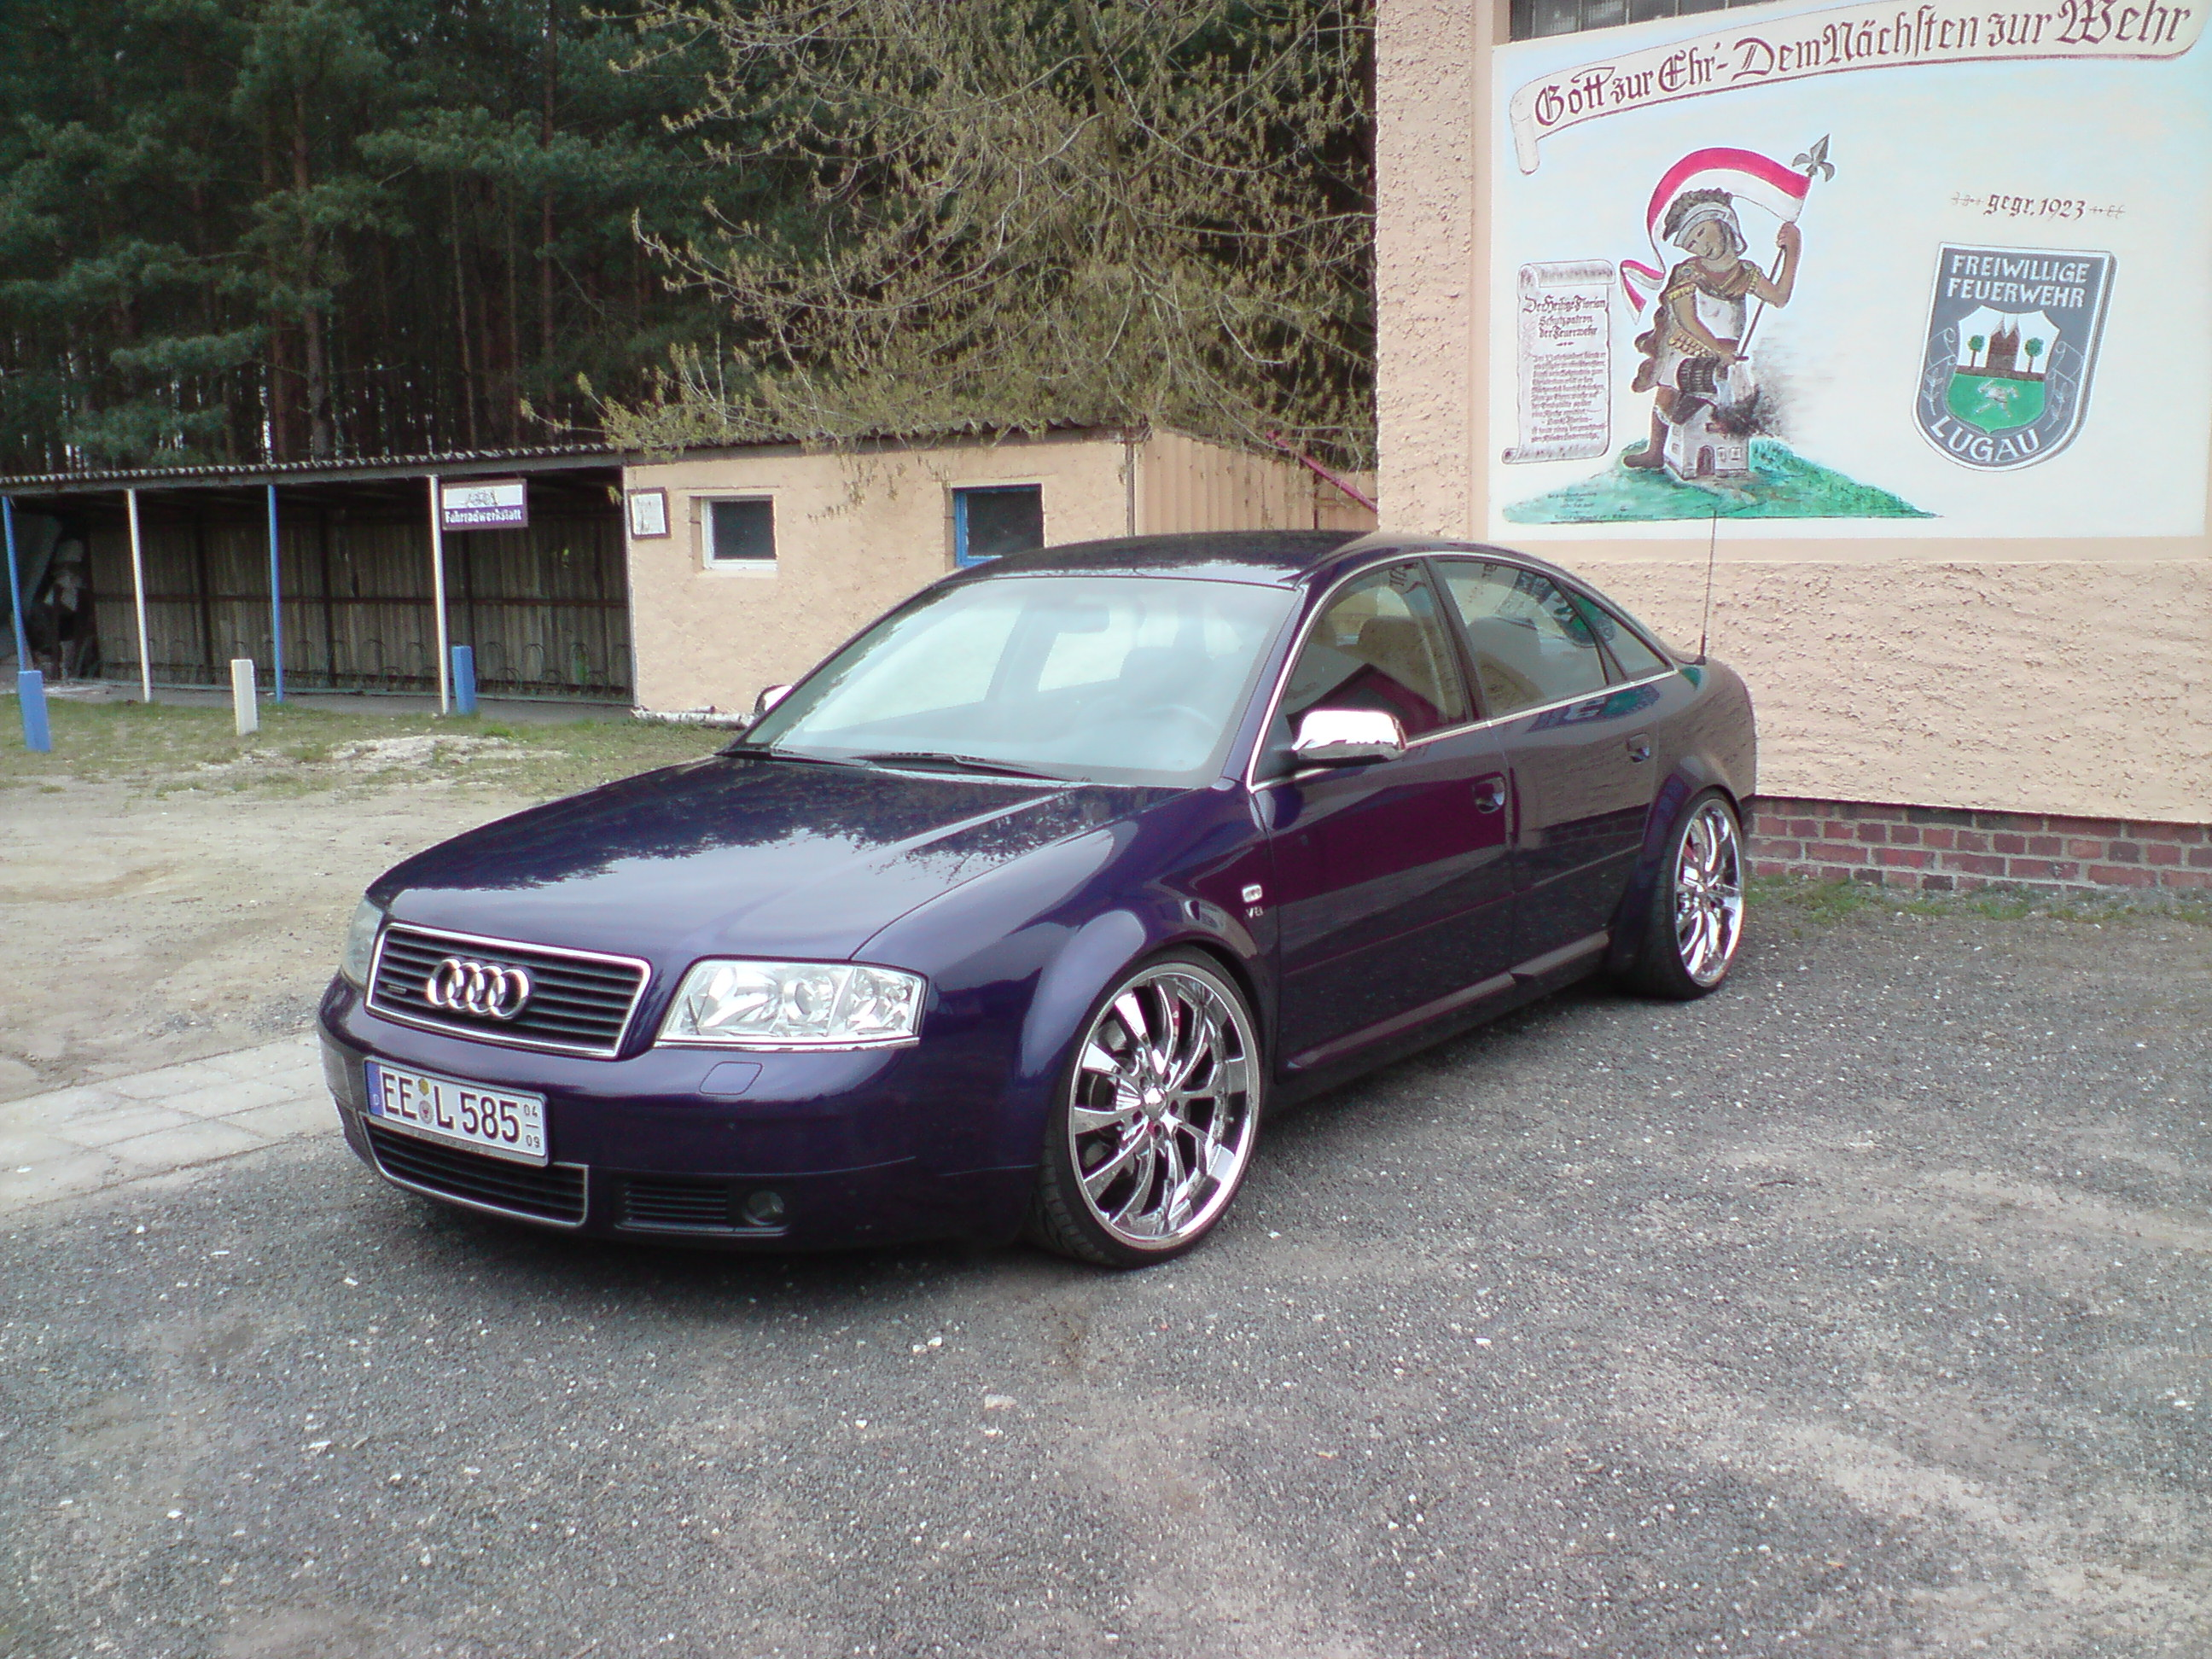 2000 Audi S6 (4b,c5) - pictures, information and specs - Auto-Database.com